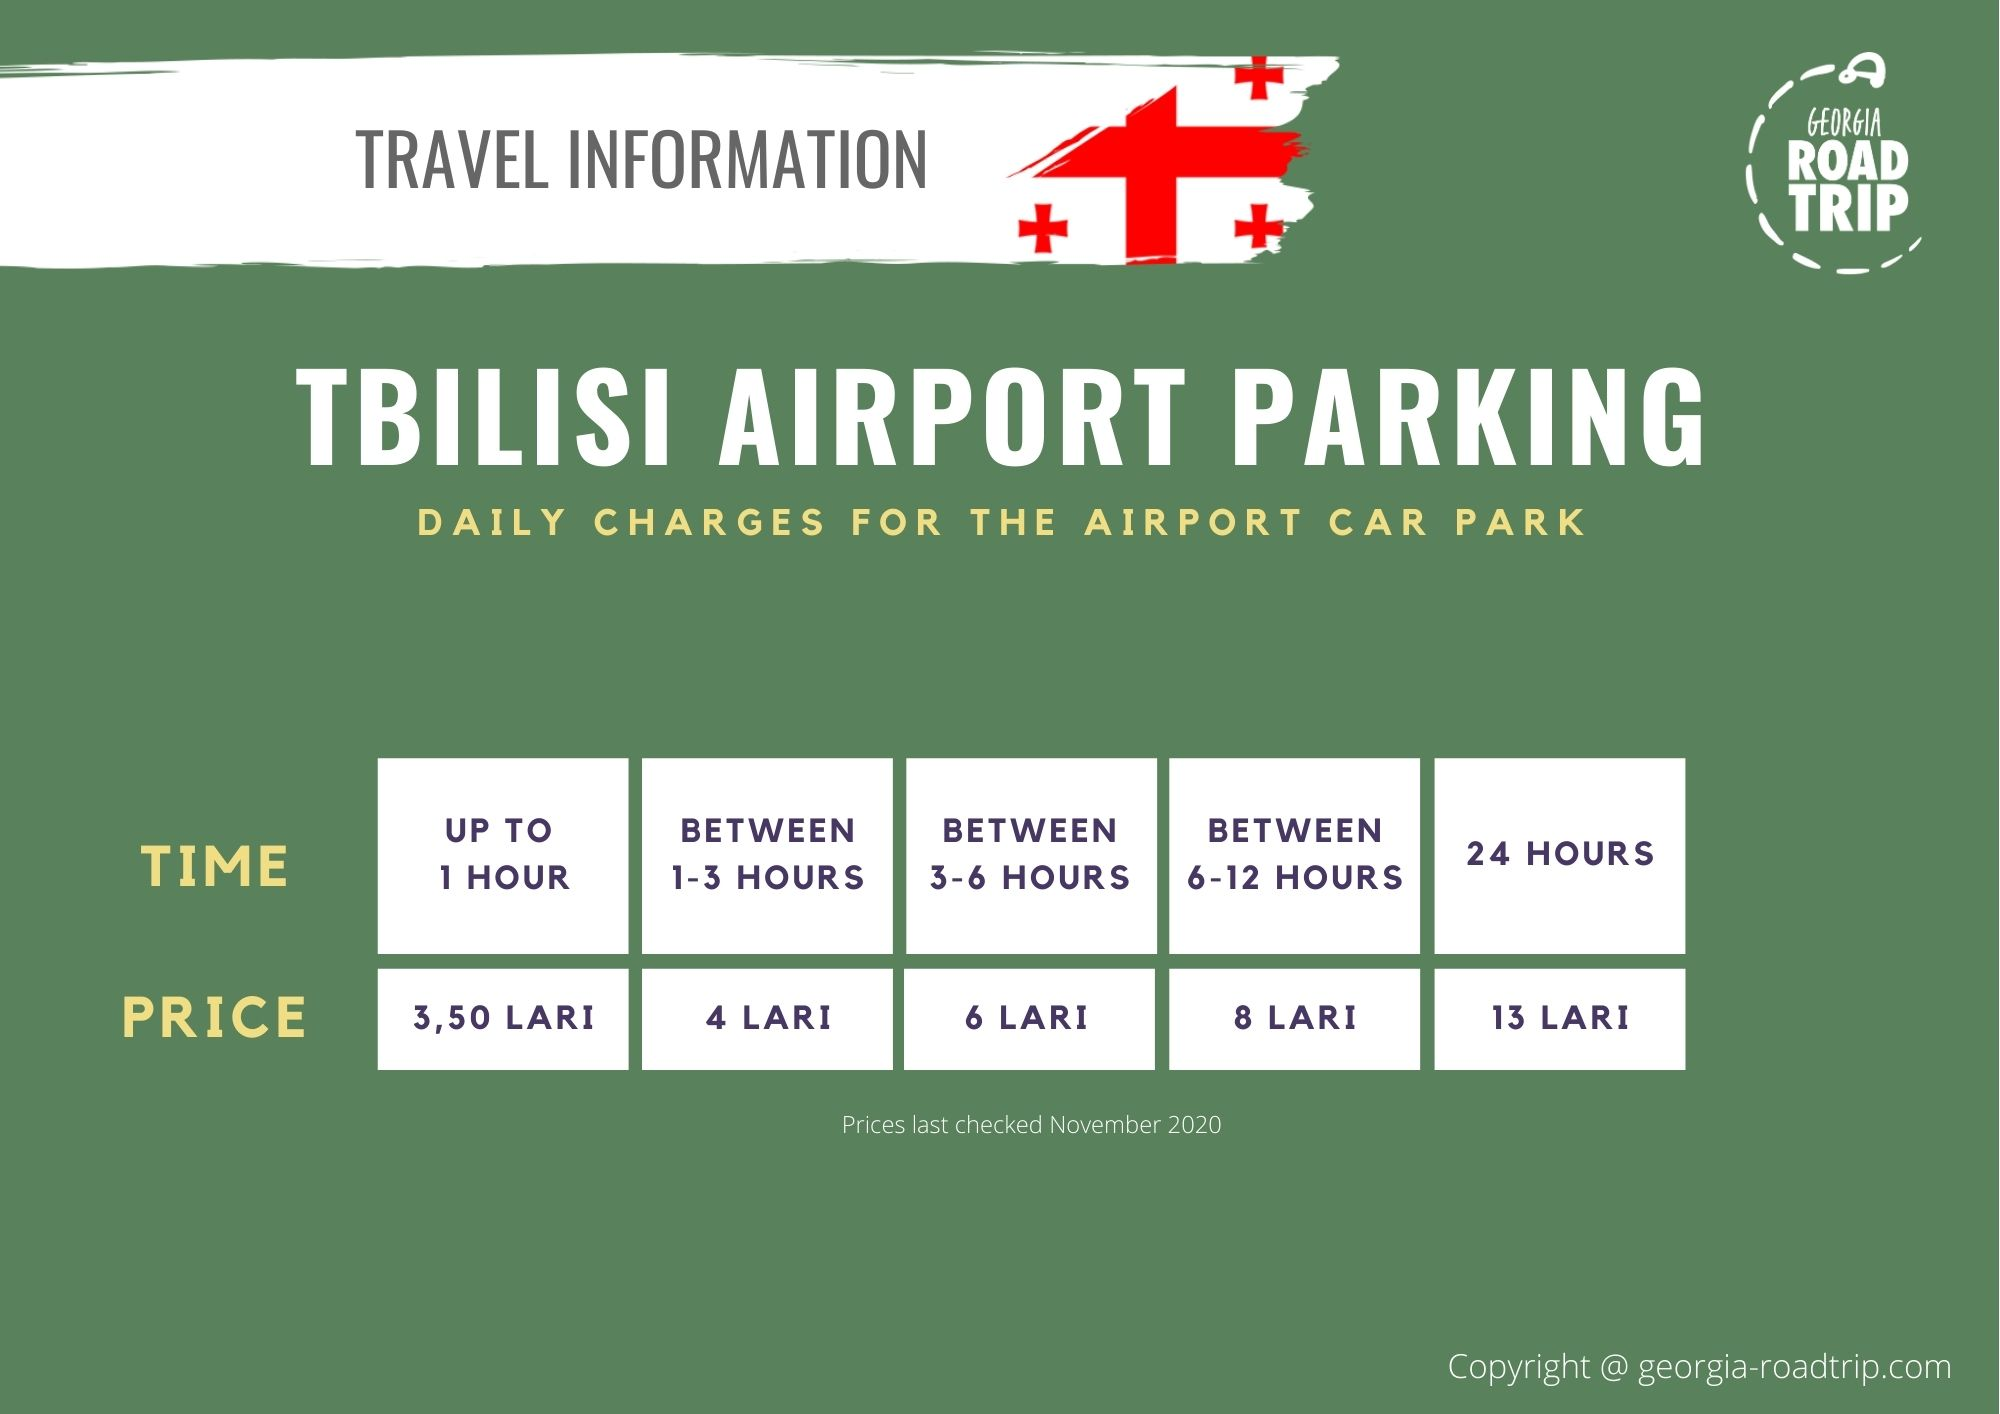 tbilisi airport parking prices